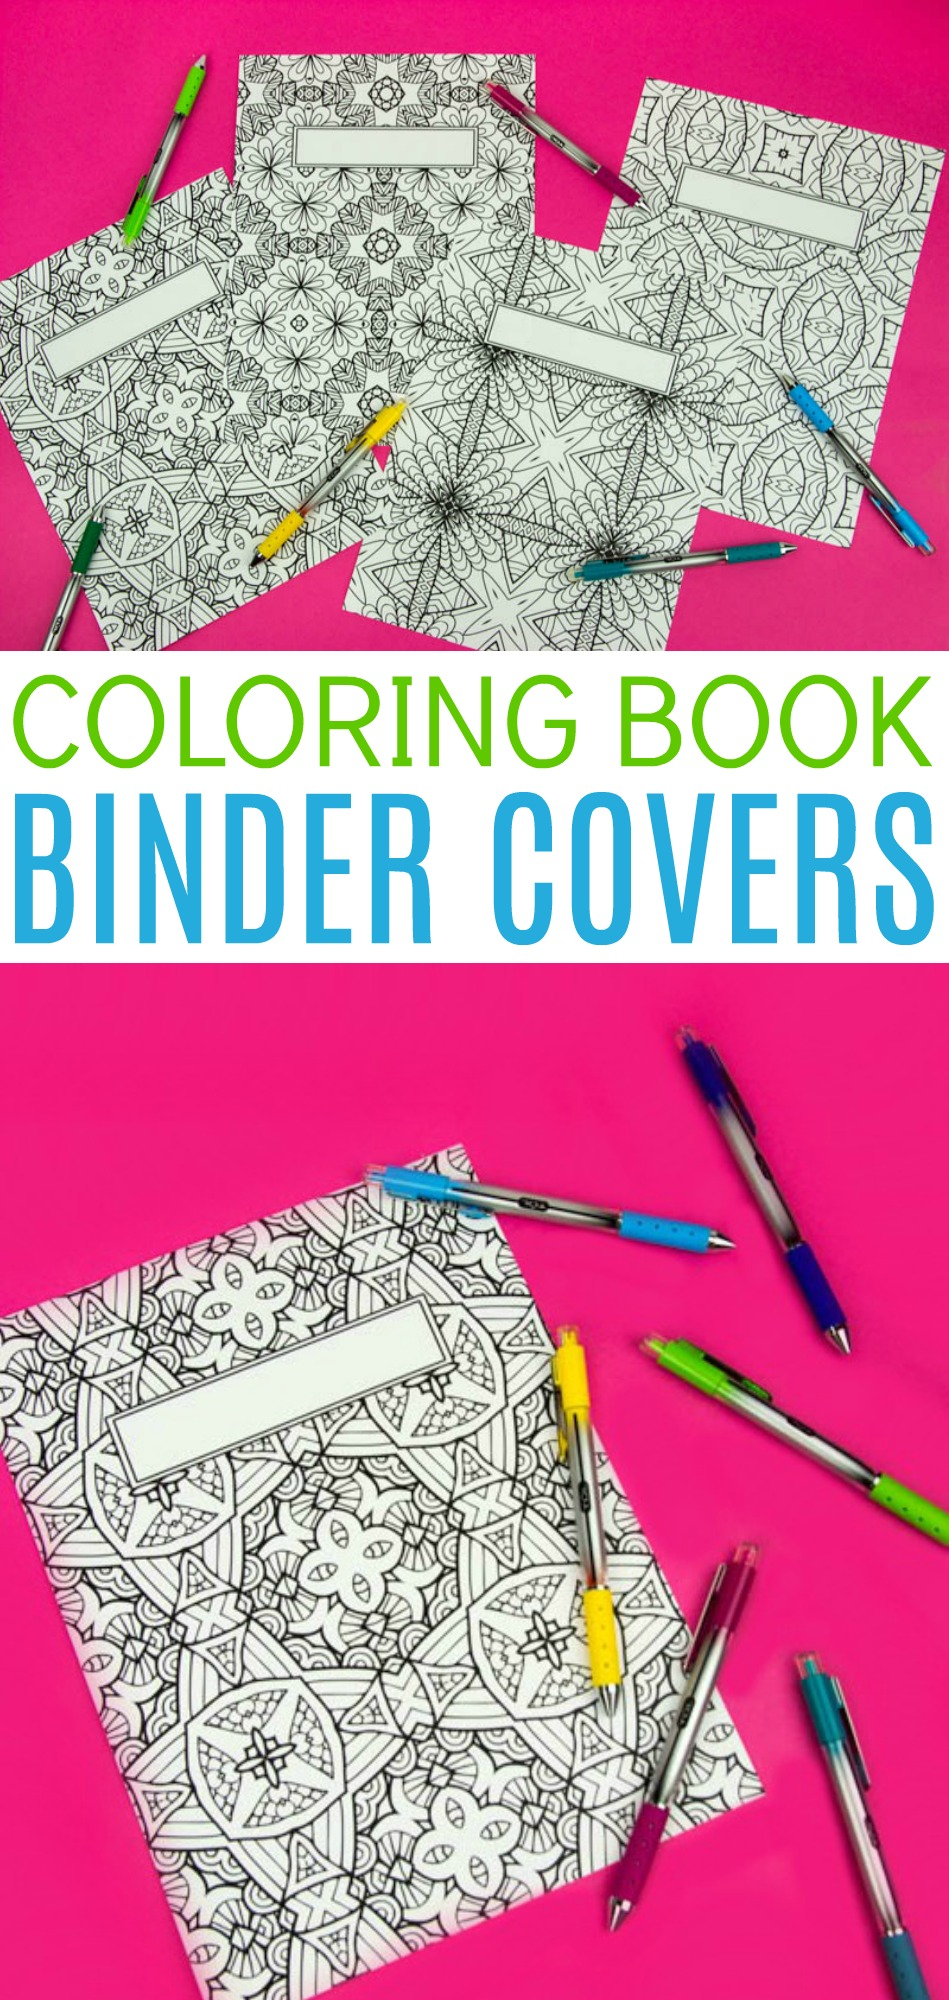 Book Cover Craft Quebec : Coloring book binder covers free printable a little